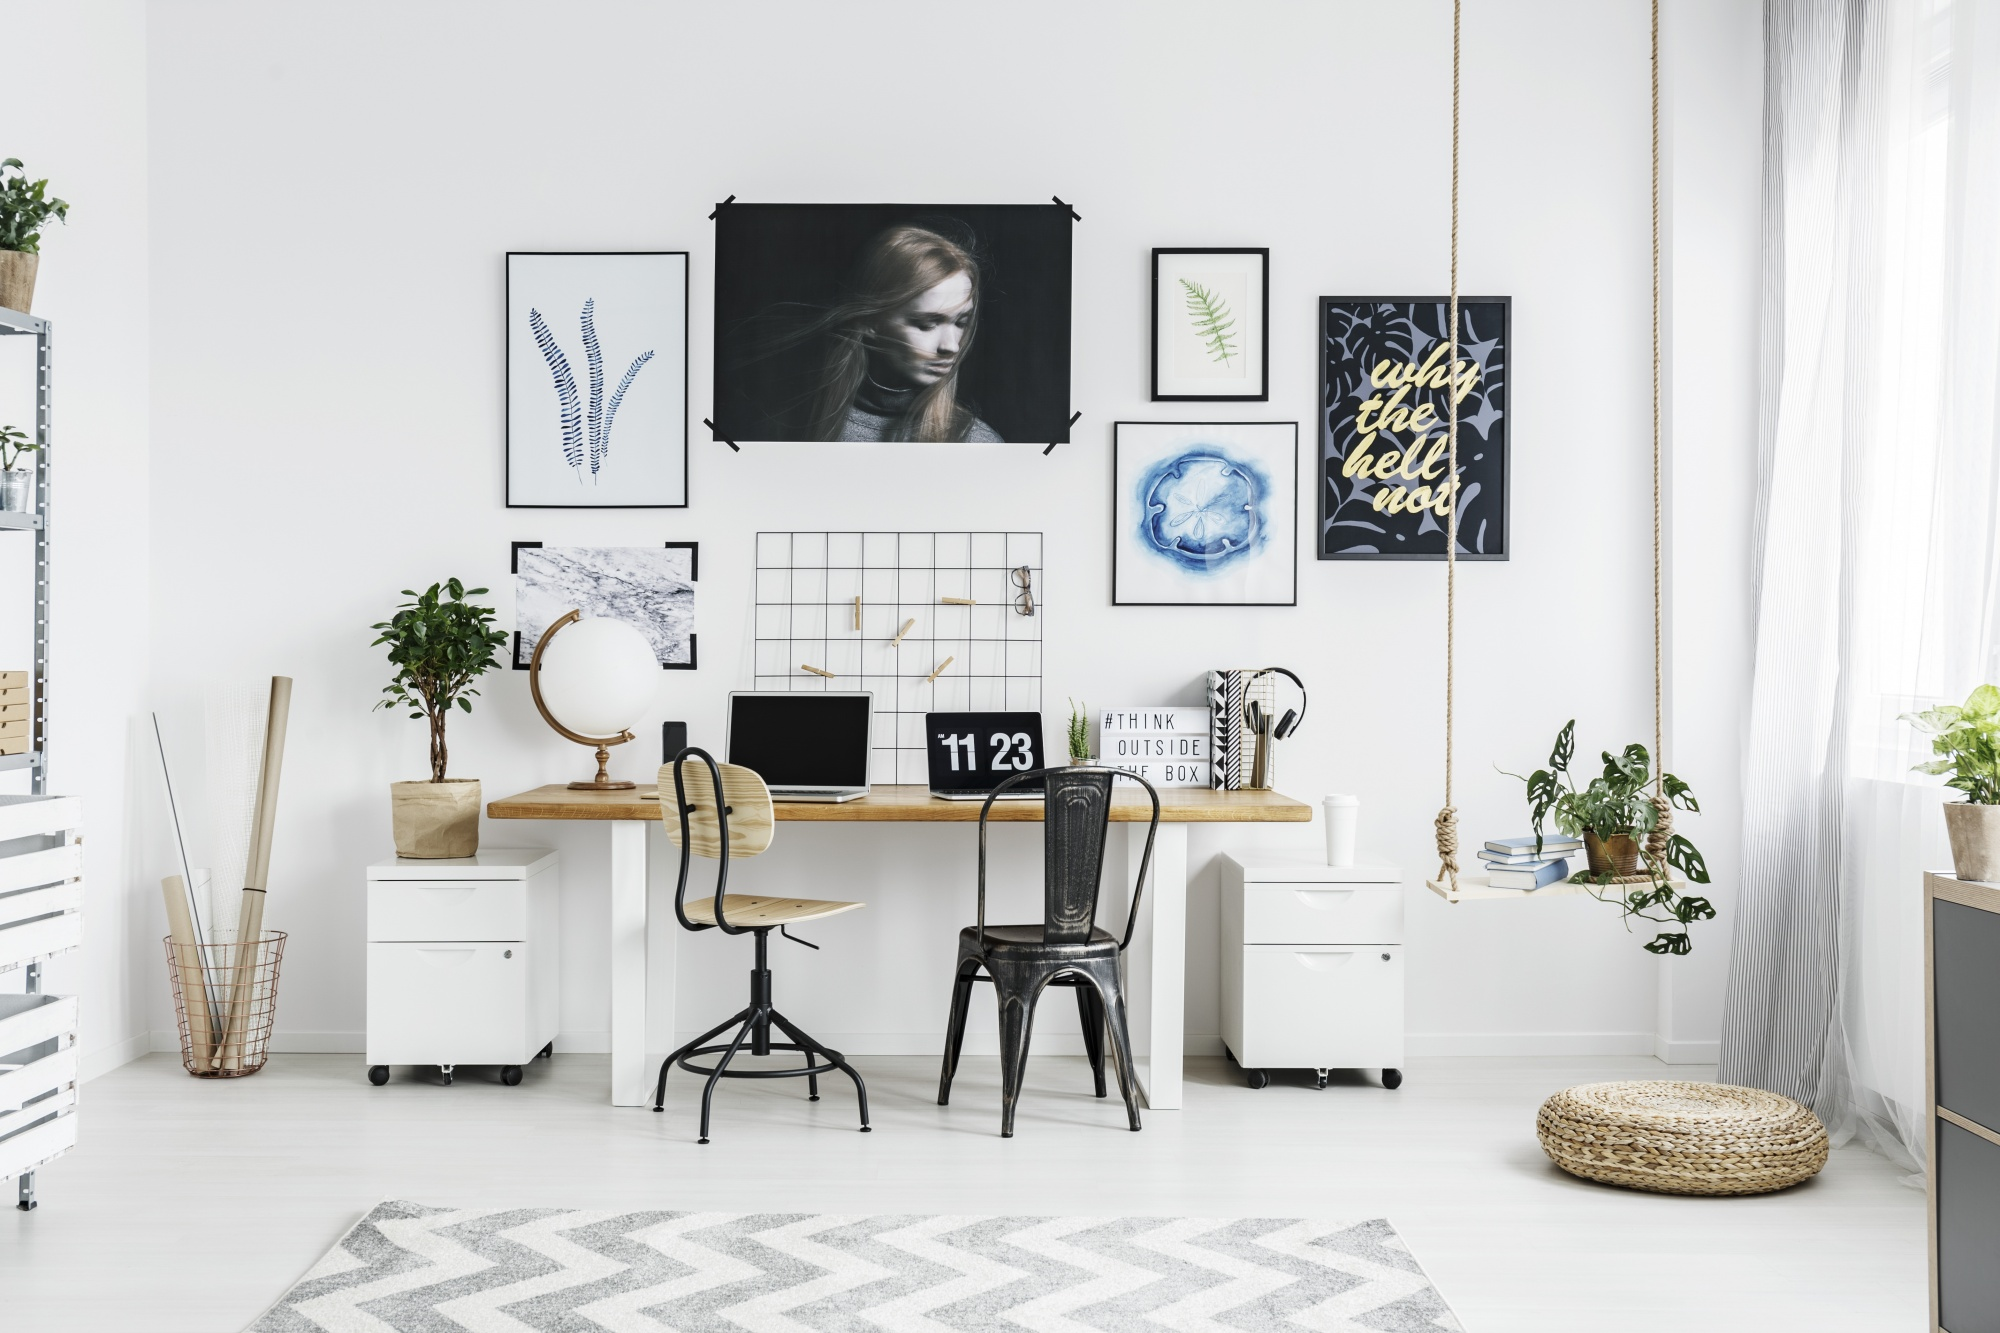 5 Easy Steps To The Perfect and Unique Gallery Wall in an office space with clean lines and neutral tones including a swing used as a planter, posters, art and peg board